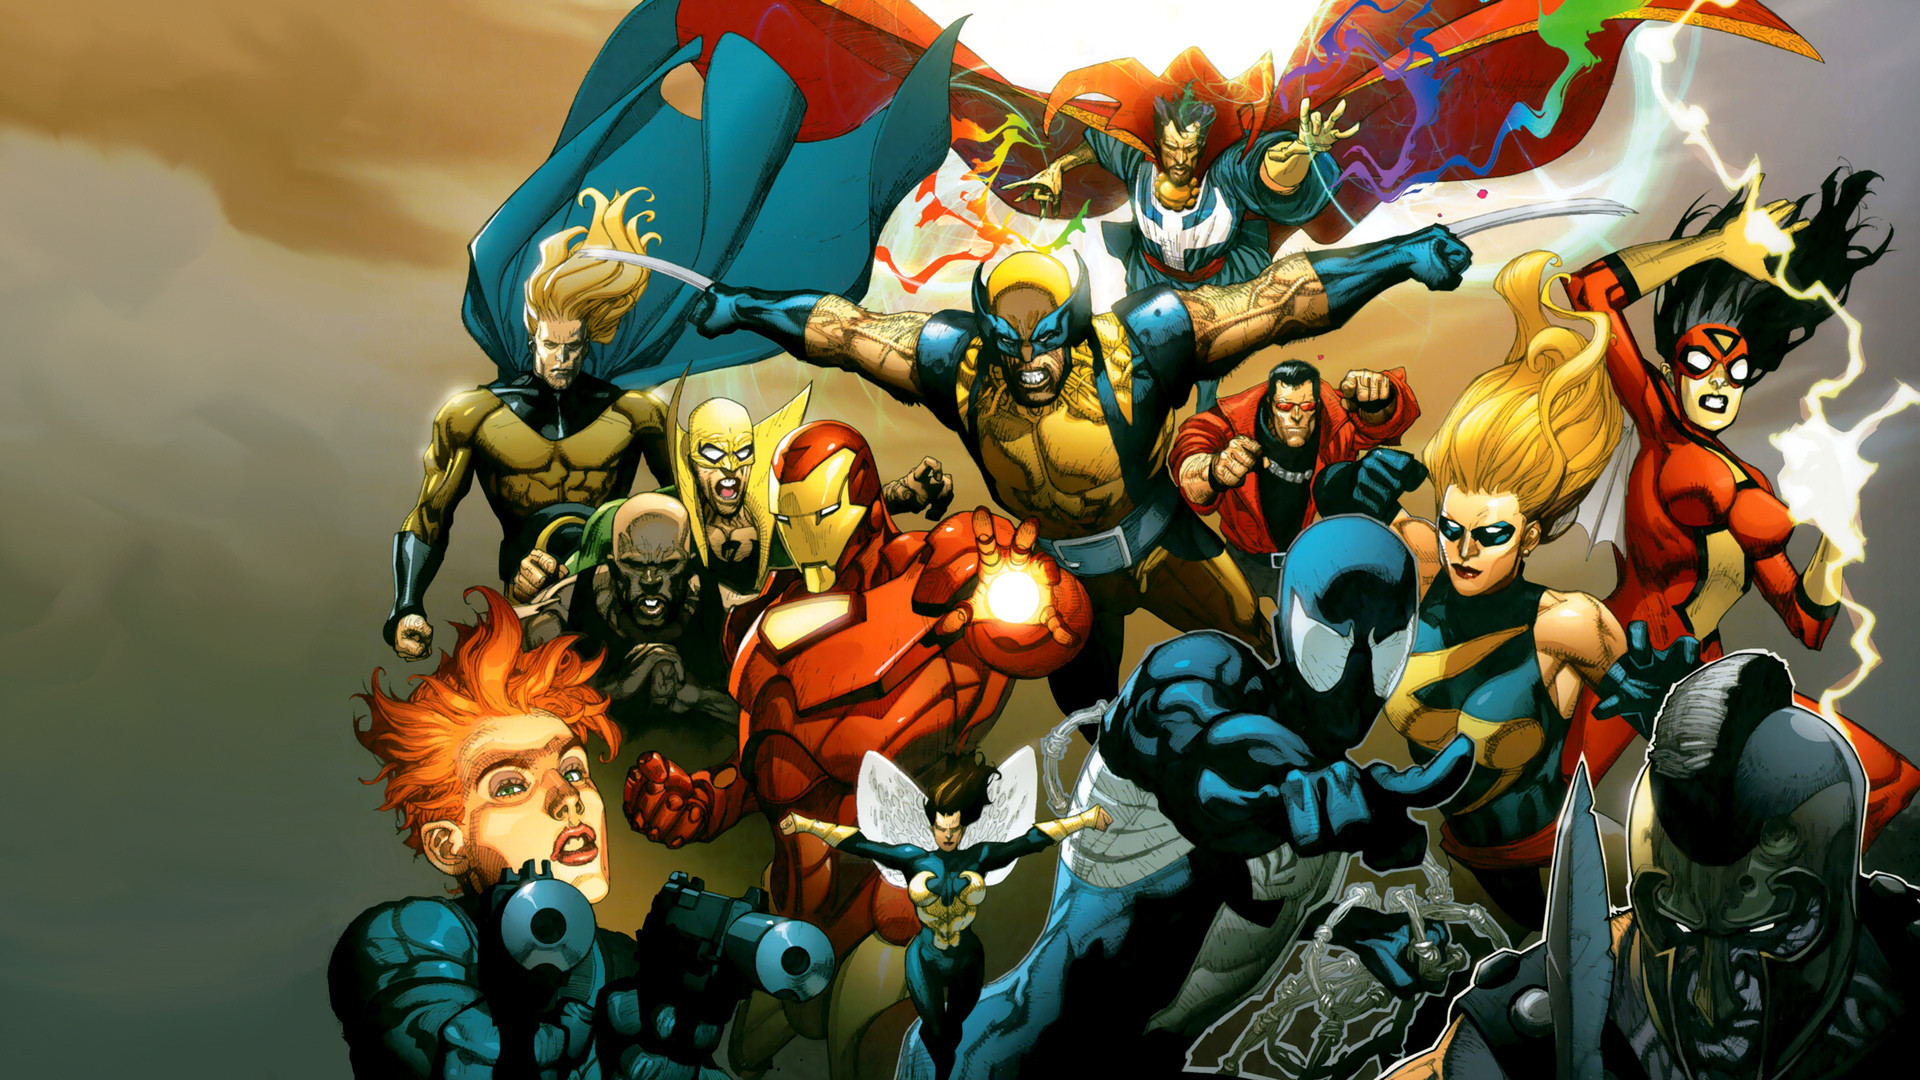 1920x1080 Marvel Wallpapers Hd Resolution For Desktop Wallpaper 1920 x 1080 px 623.08  KB avengers guardians of